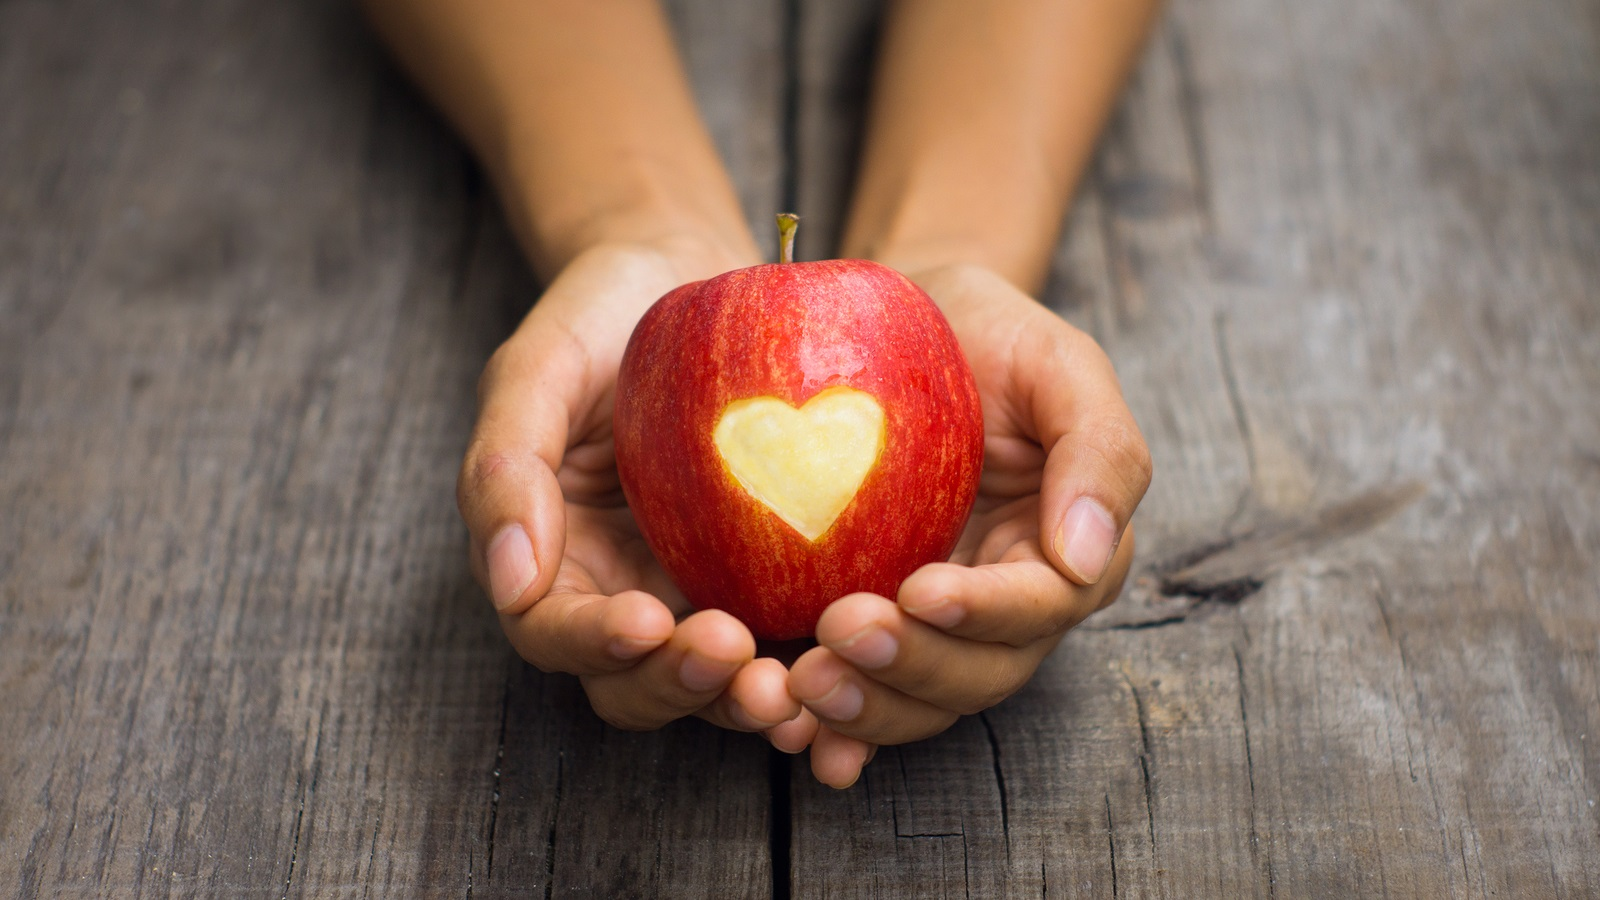 Apple physical therapy - Red Apple With Engraved Heart